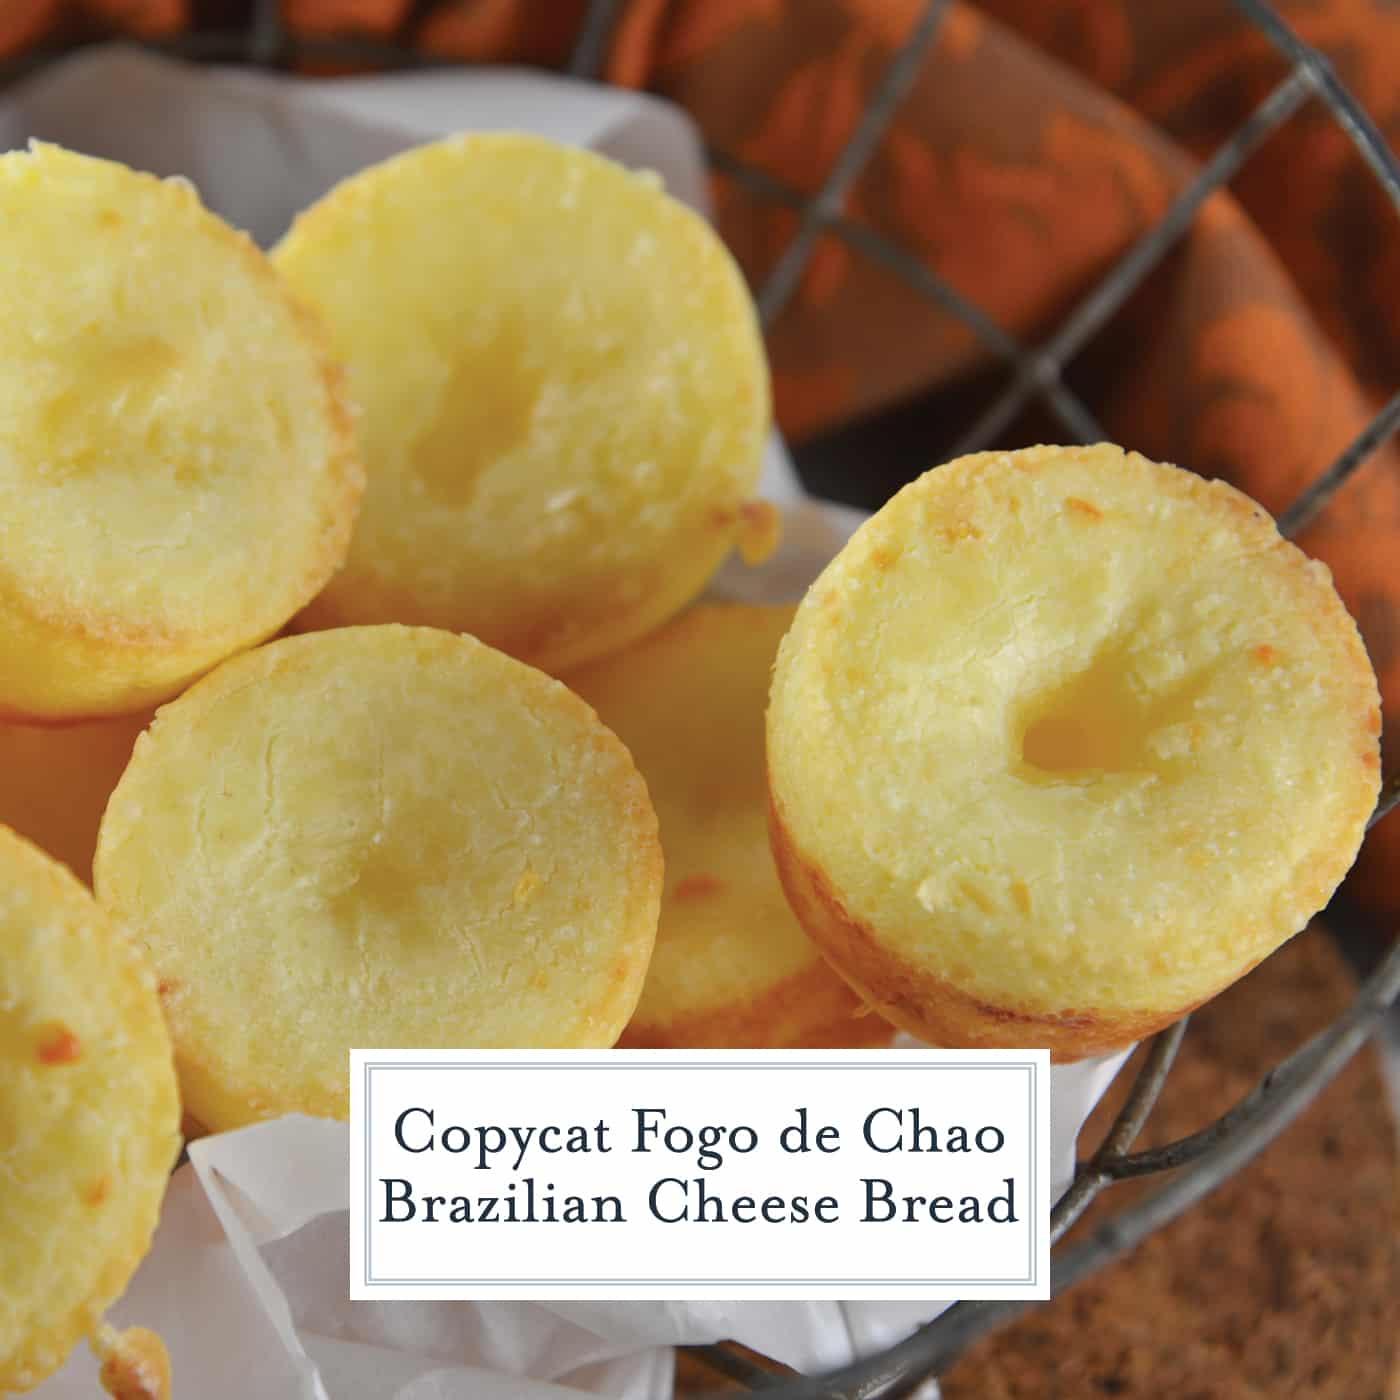 Fogo de Chao Rolls, also known as Brazilian cheese puff bread, are easier to make at home than you think. This gluten-free bread is also yeast free and only takes 30 minutes! #fogodechaorolls #braziliancheesebread www.savoryexperiments.com